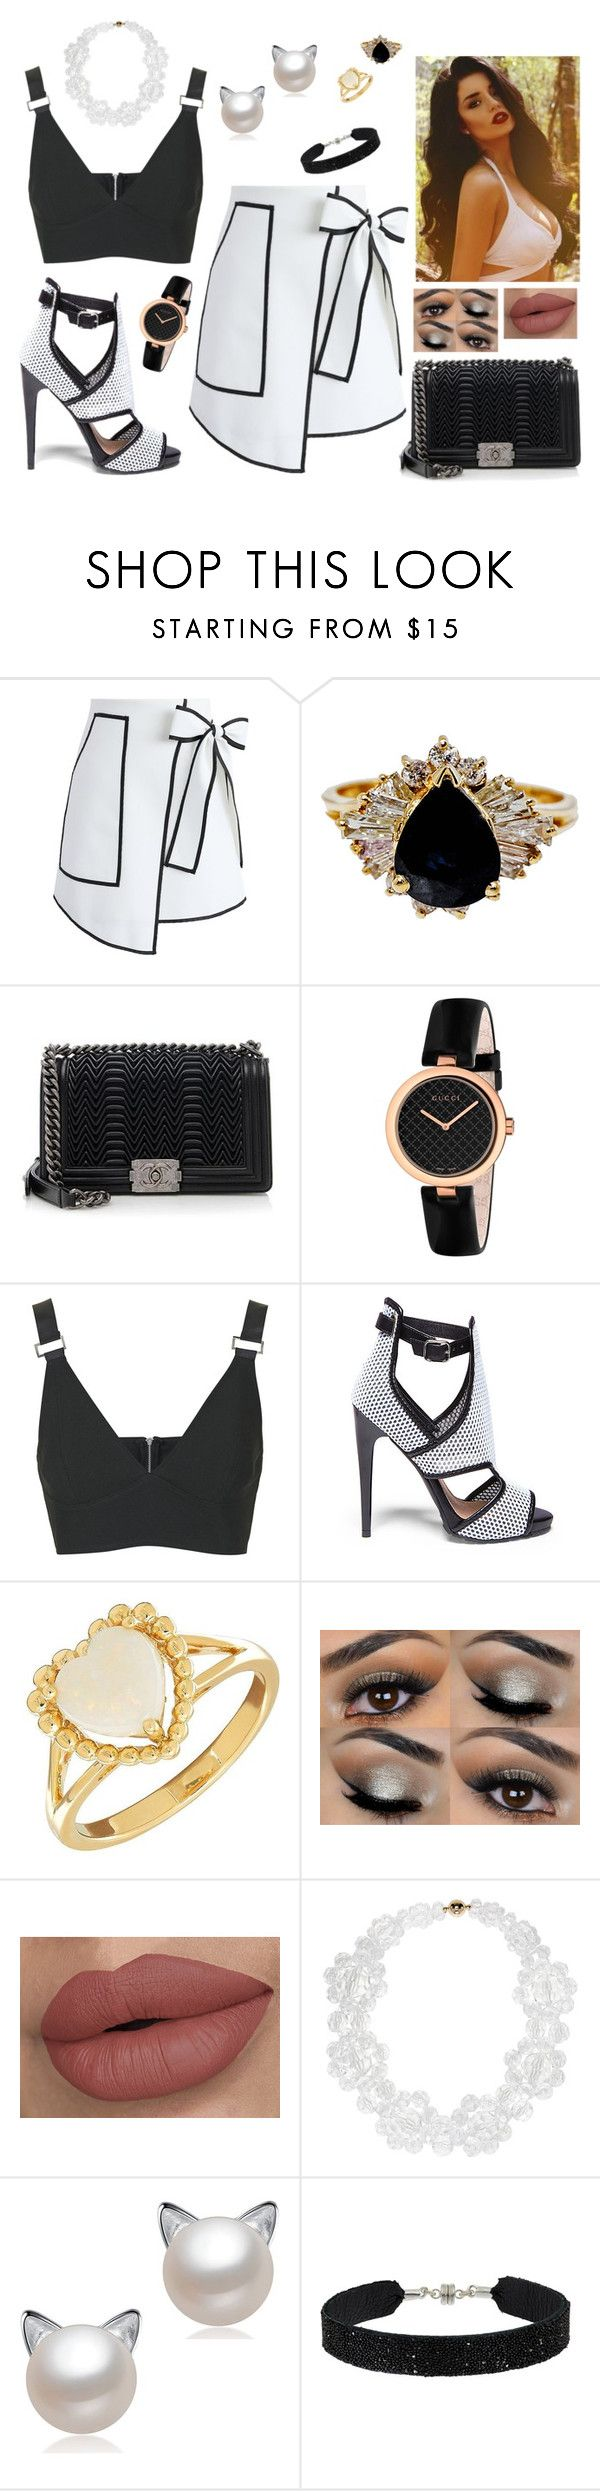 """Black and white (date)"" by anaritaferreira on Polyvore featuring moda, Chicwish, Chanel, Gucci, Topshop, Steve Madden, Lord & Taylor, Simone Rocha e She.Rise"